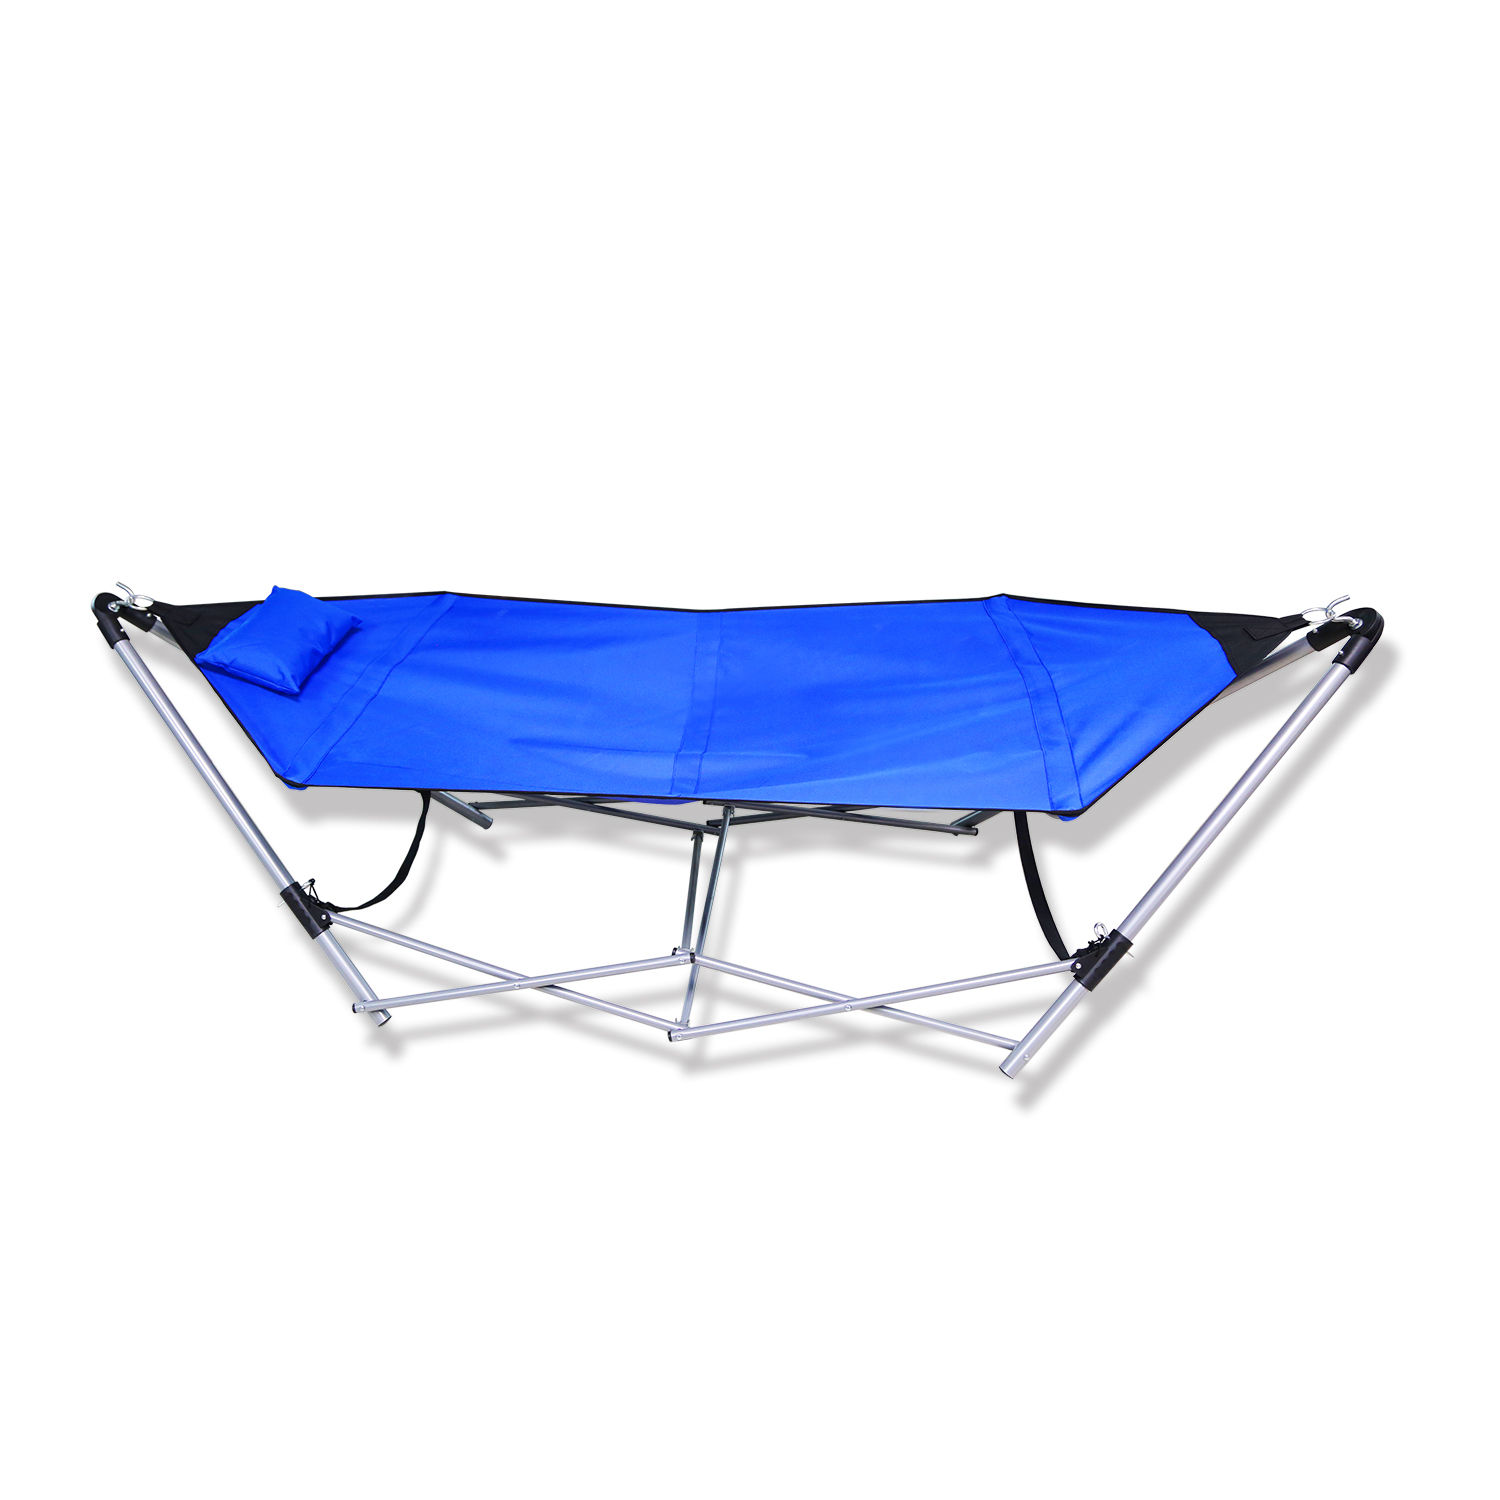 Portable Folding Porch Camping Hammock Lounge Bed Cot with Frame Stand Blue - Portable Folding Porch Camping Hammock Lounge Bed Cot With Frame